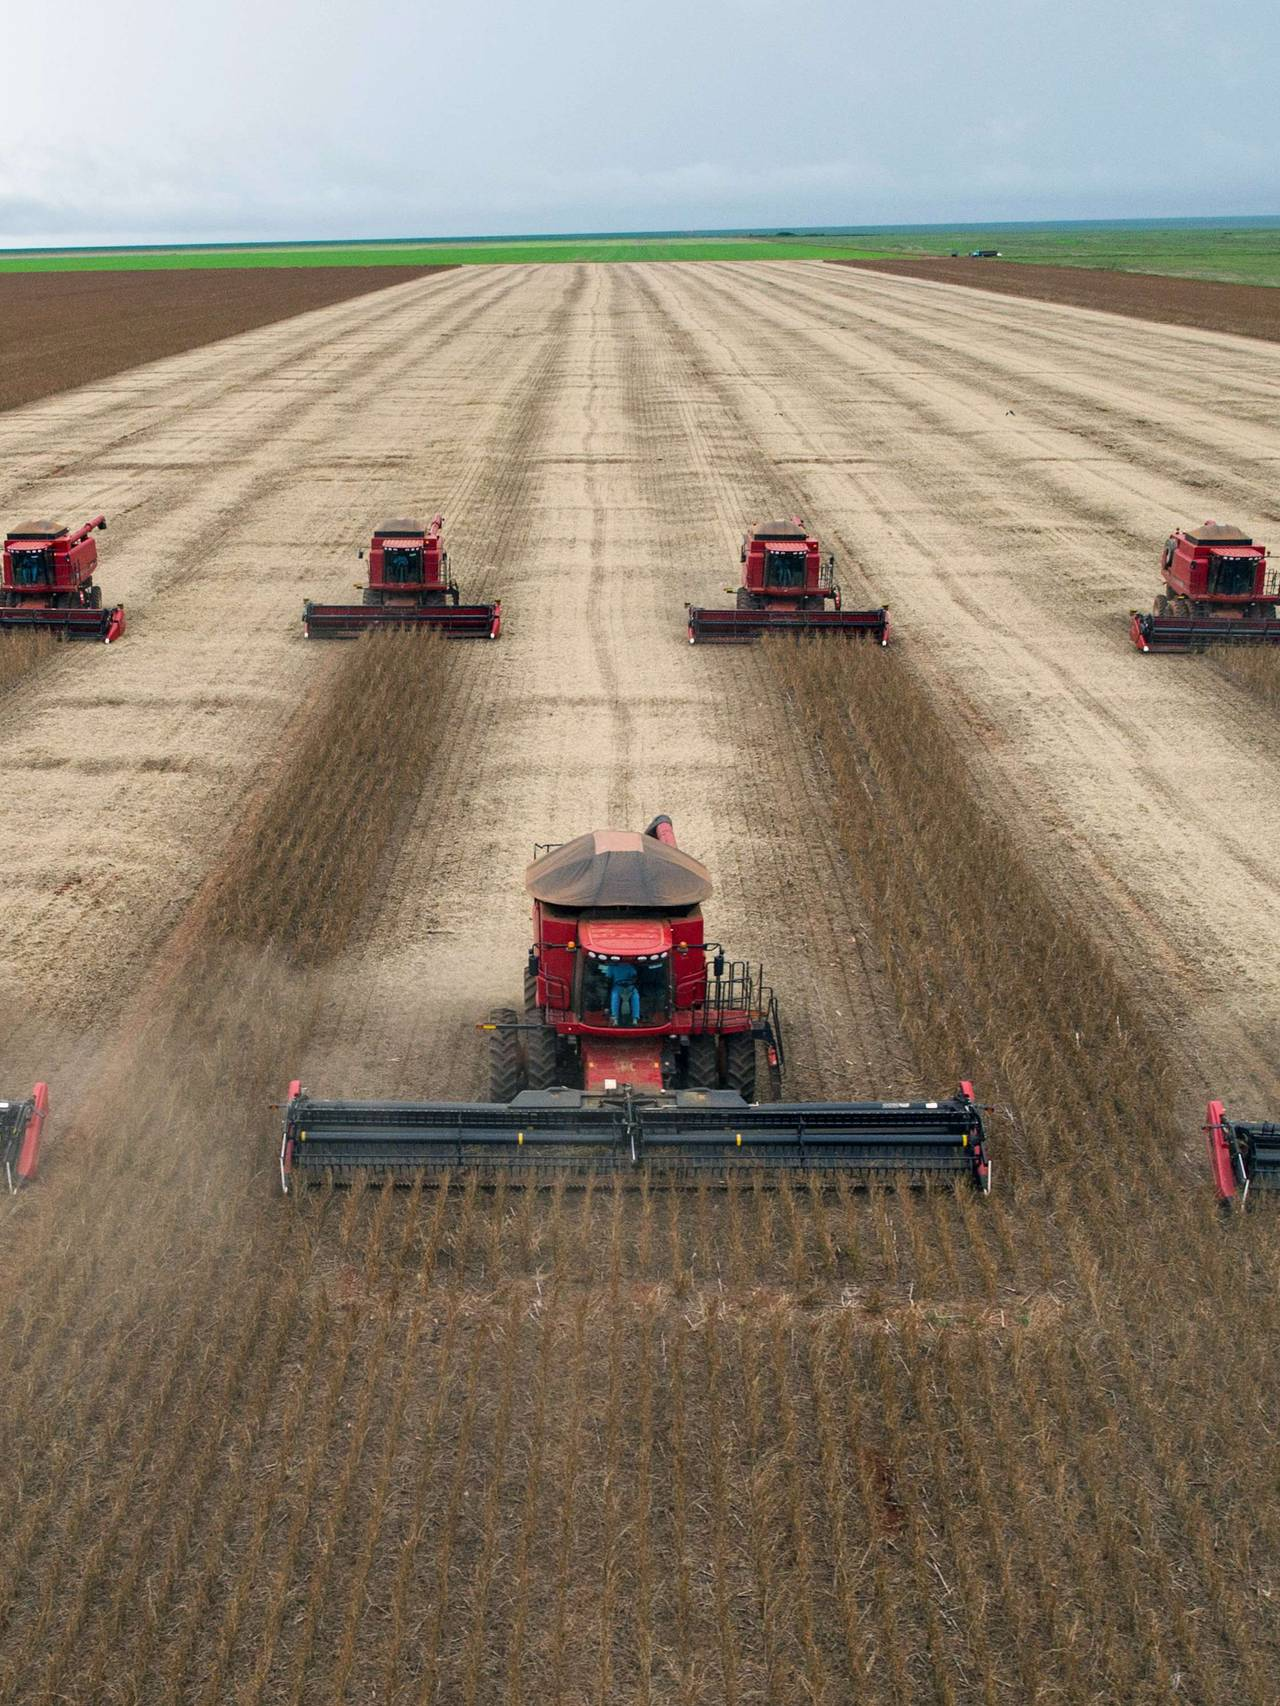 BRAZIL-ECONOMY-AGRICULTURE-GRAIN-SOY-FILE